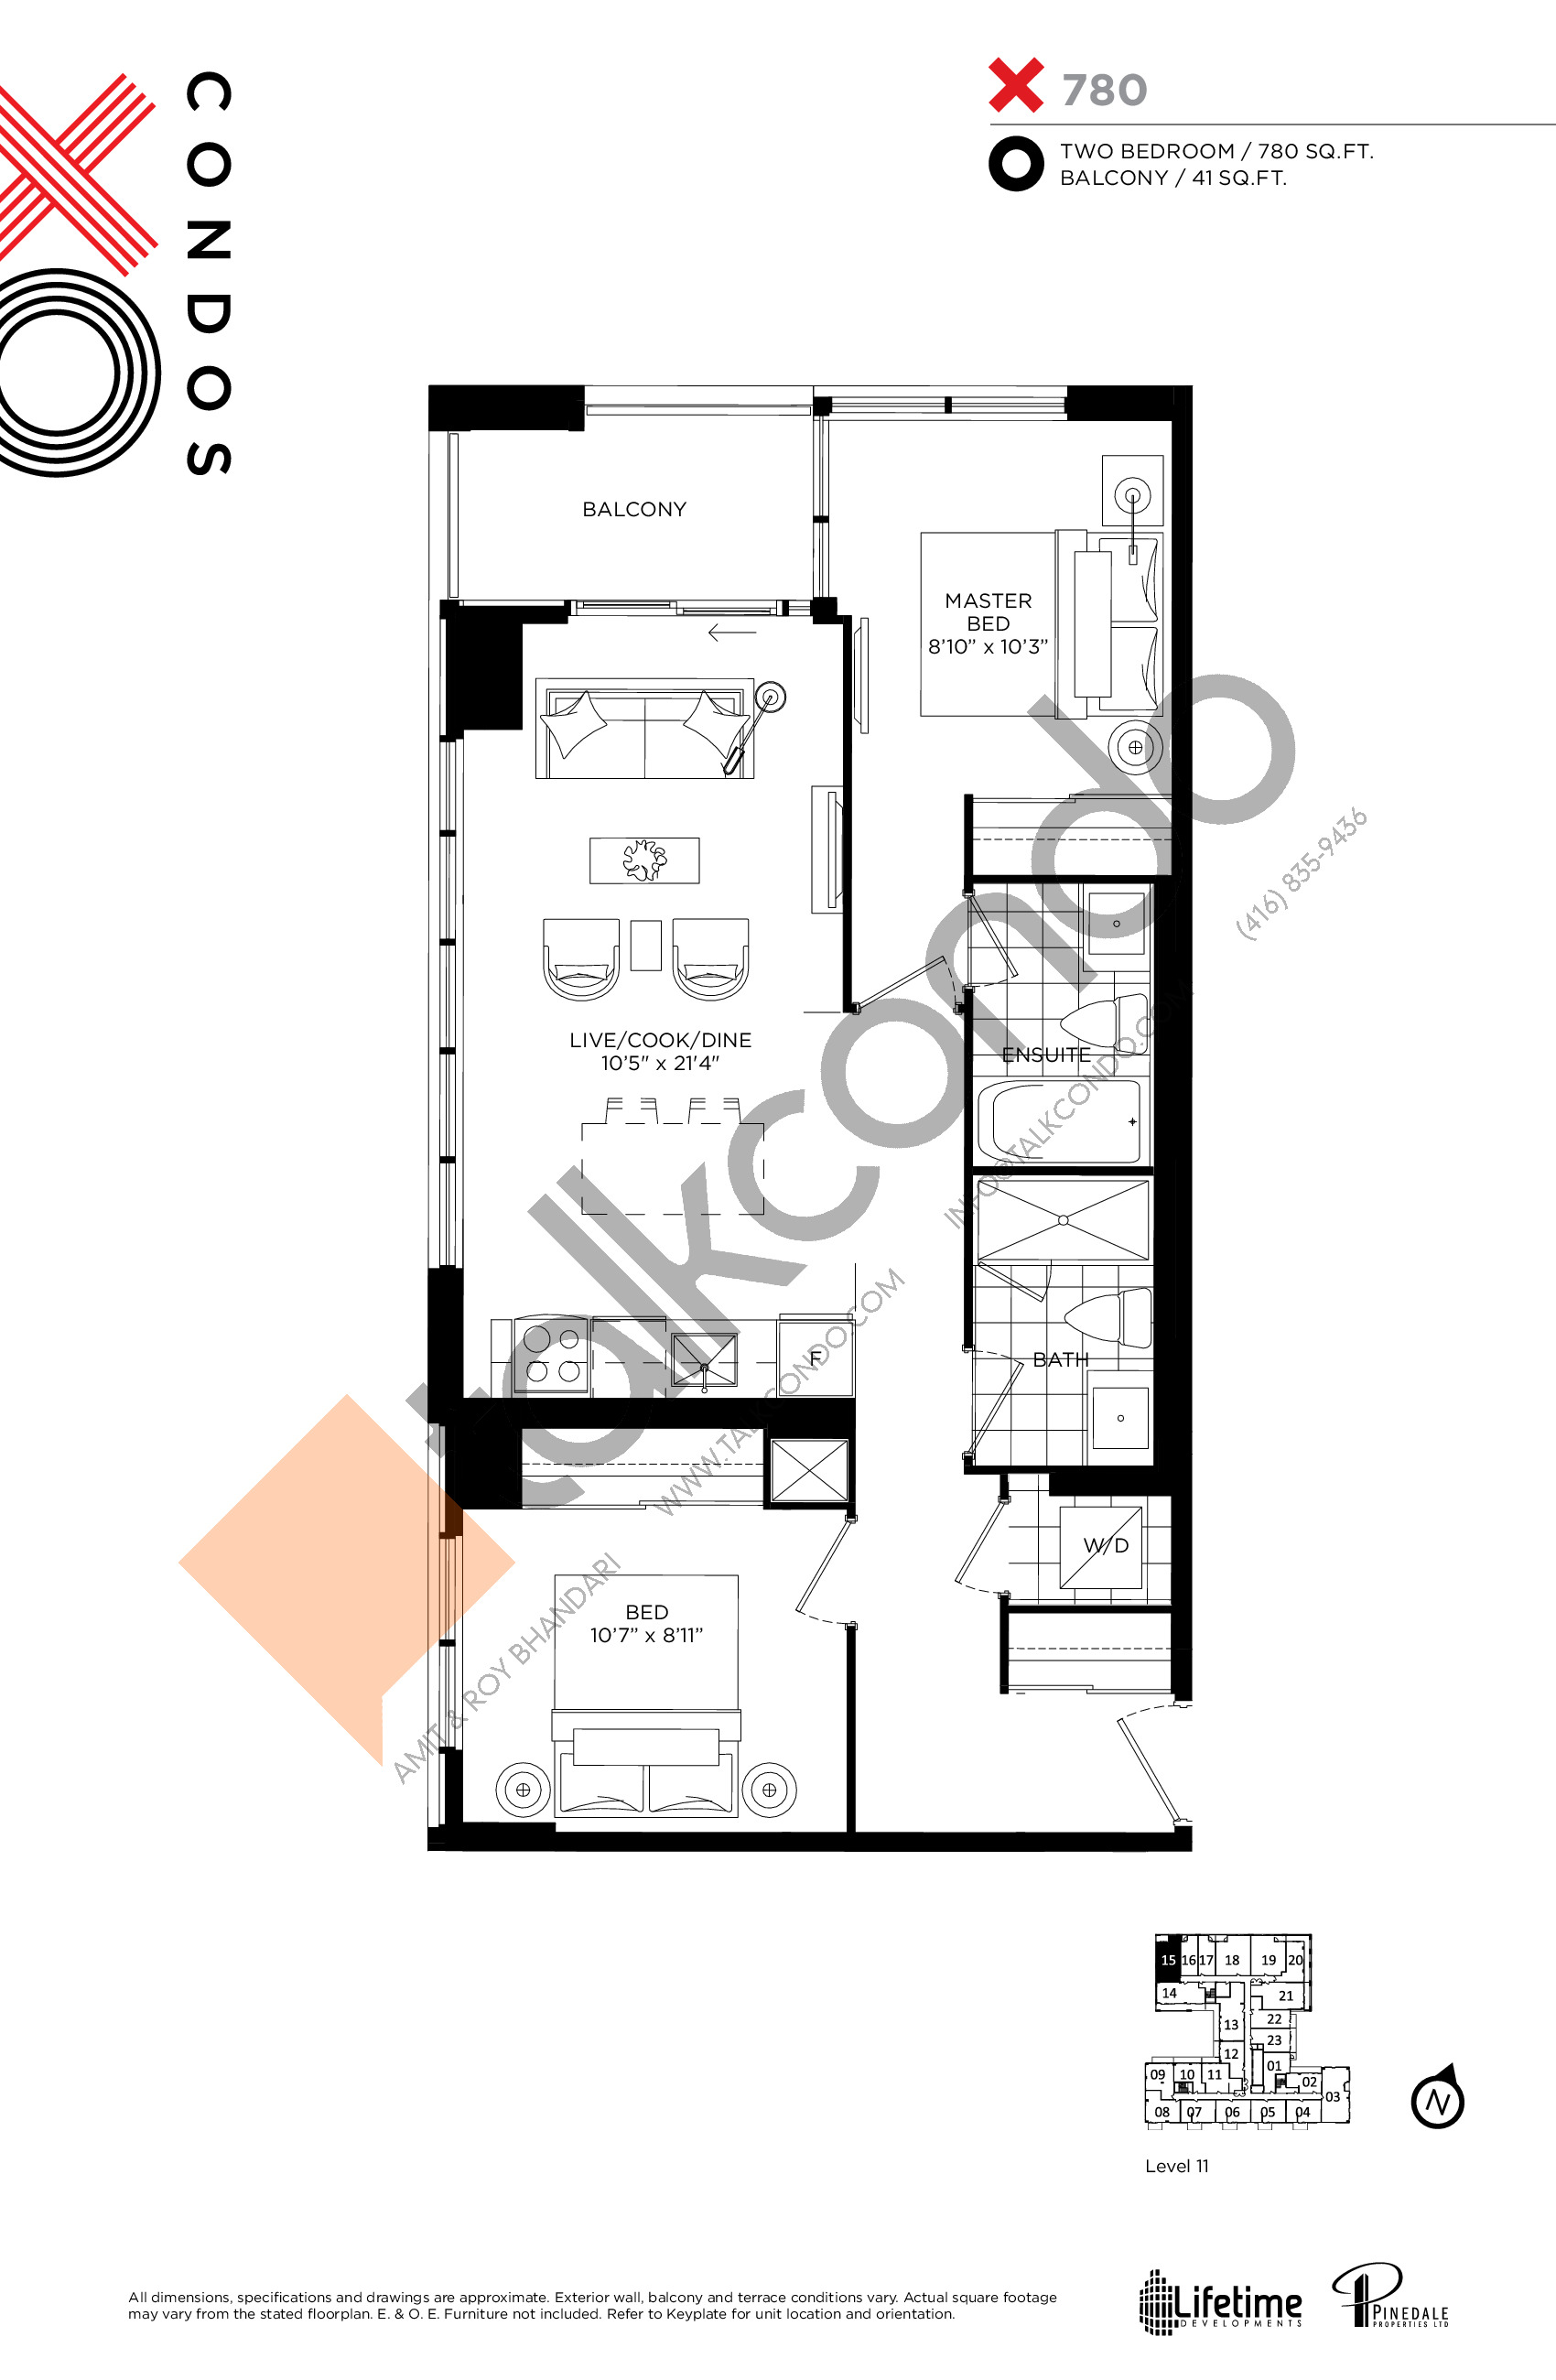 X780 Floor Plan at XO Condos - 780 sq.ft